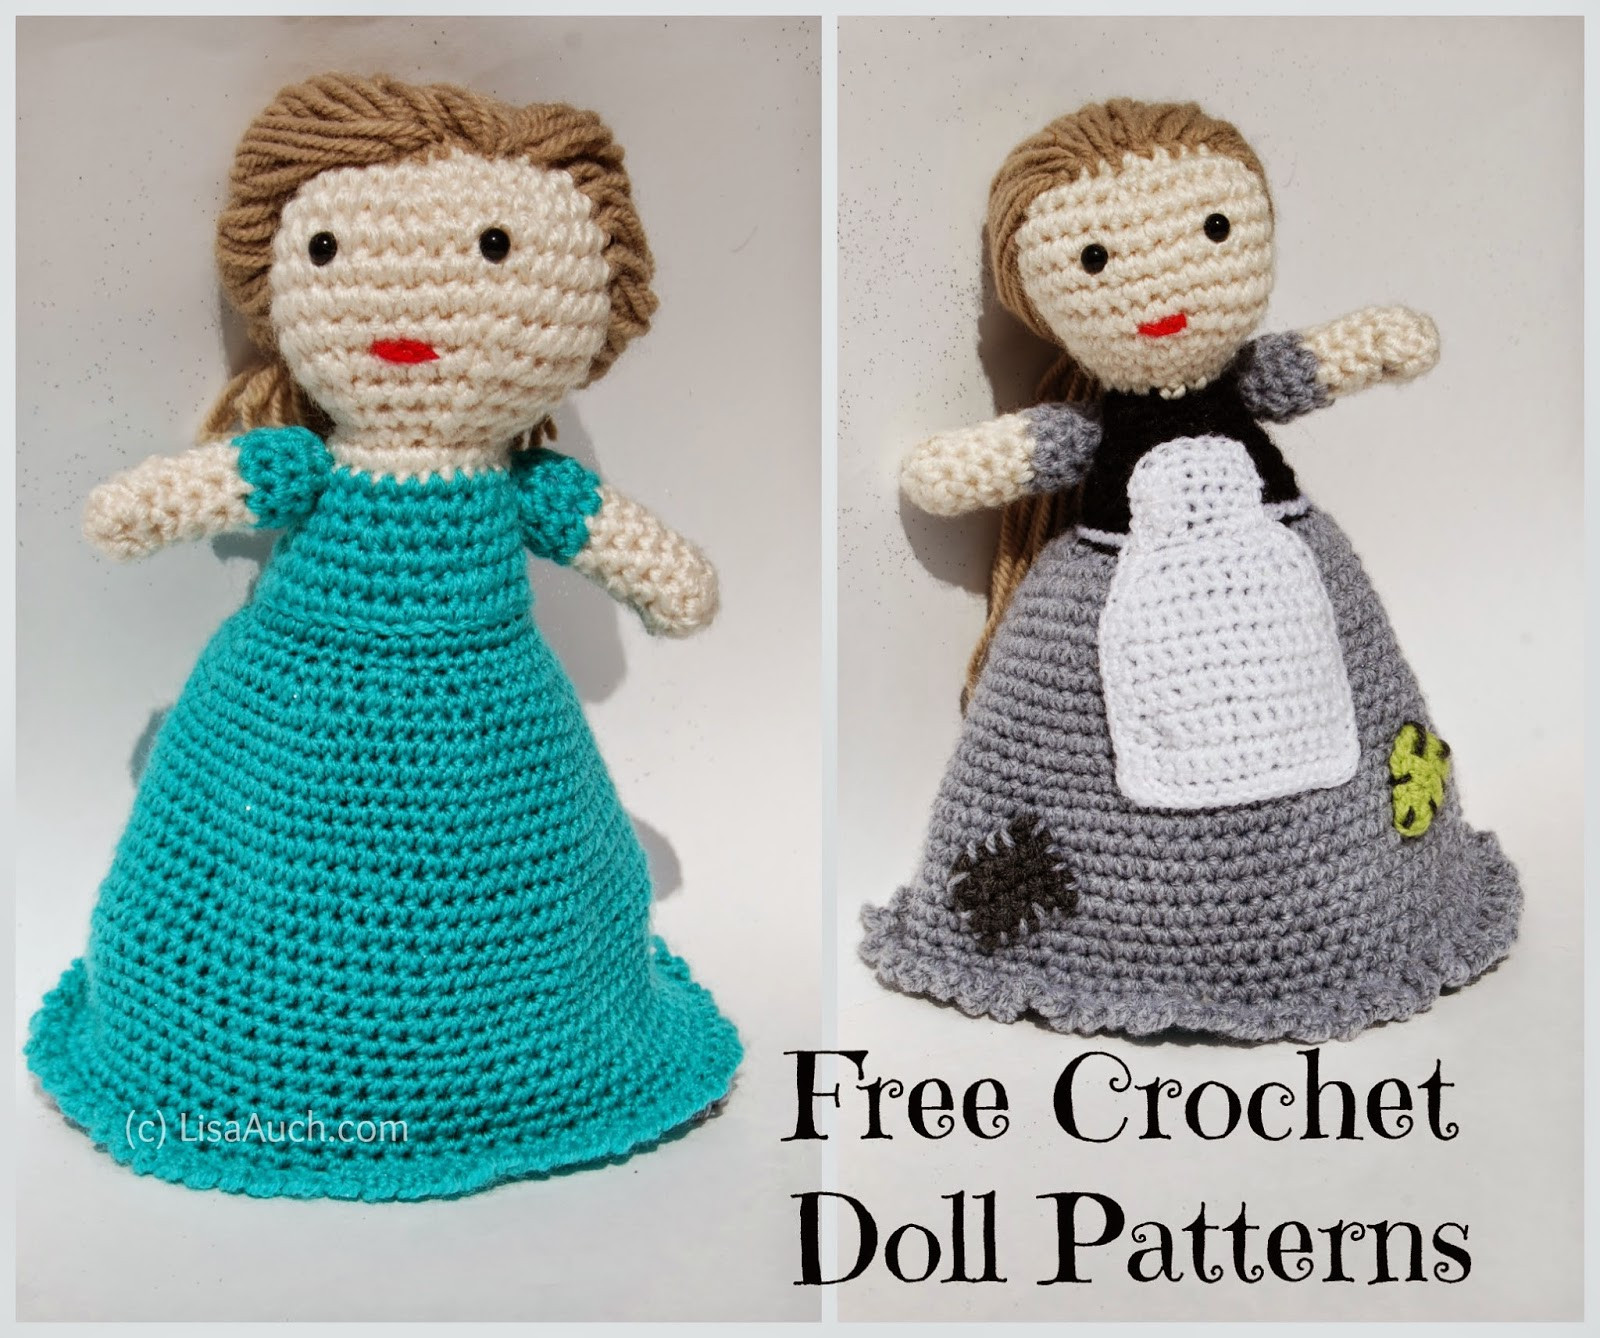 Basic Crochet Patterns Inspirational Free Crochet Amigurumi Doll Pattern A Basic Crochet Doll Of Amazing 47 Ideas Basic Crochet Patterns